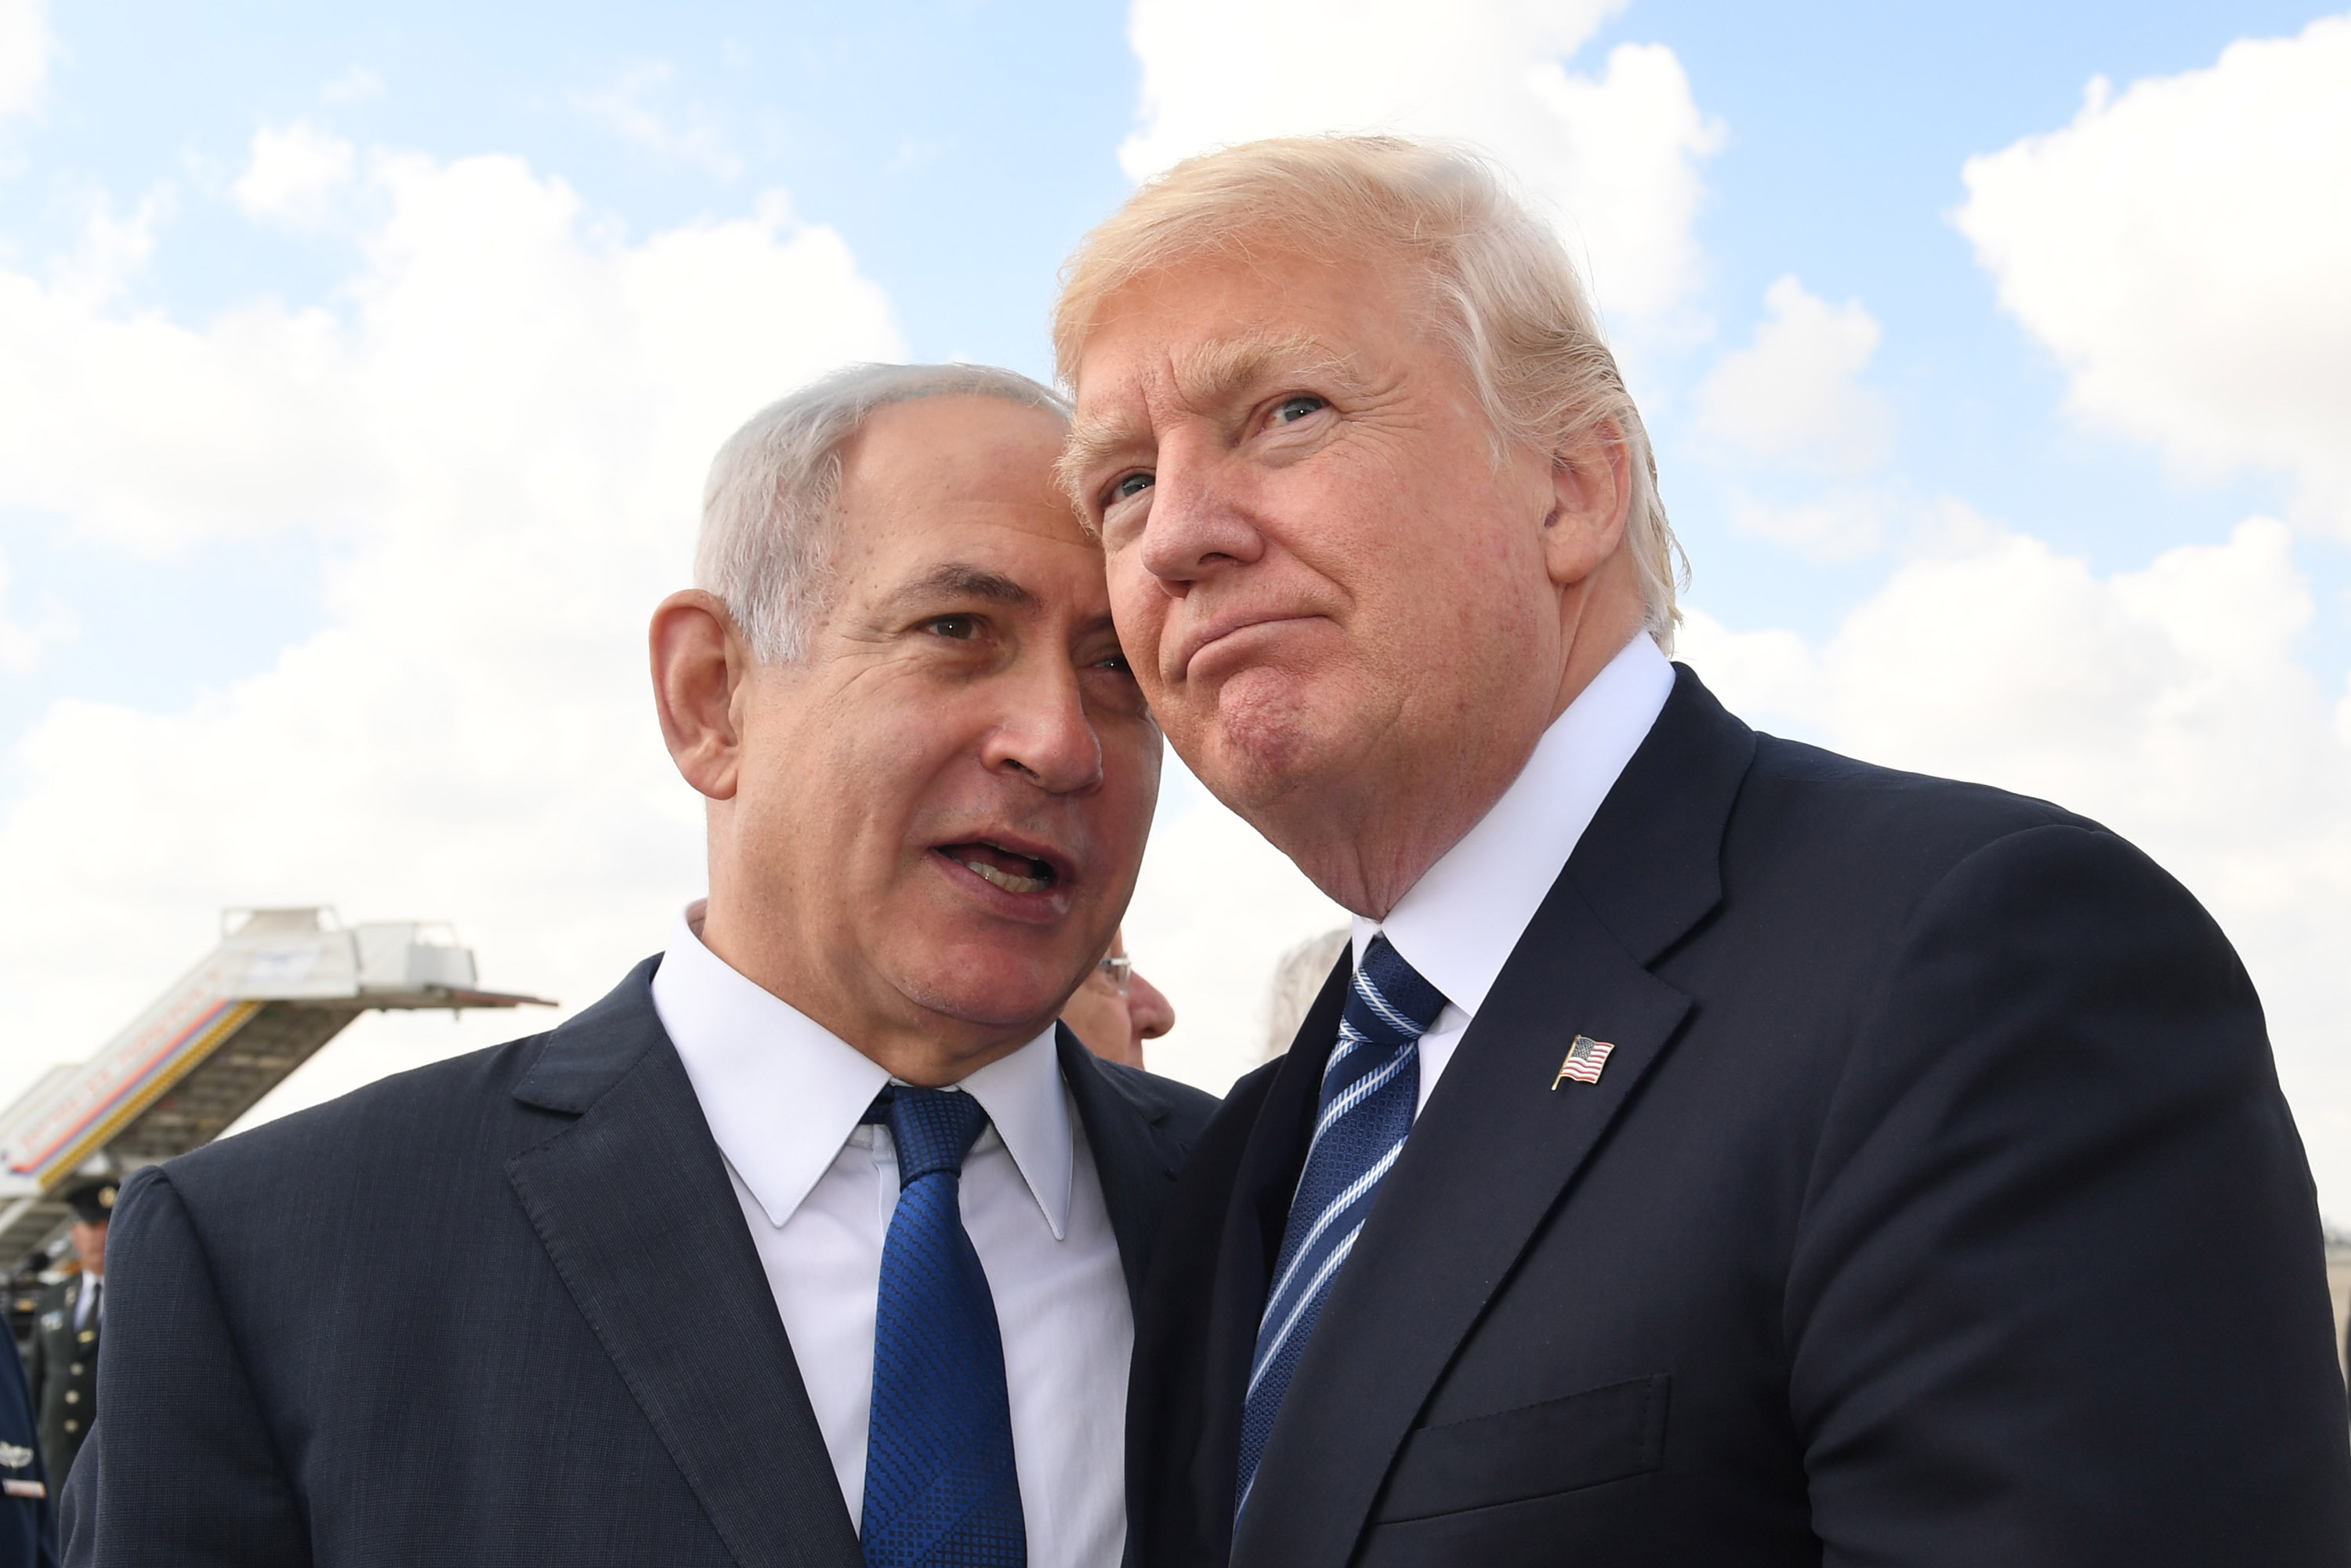 Israeli Prime Minister Benjamin Netanyahu speaks with US President Donald Trump.